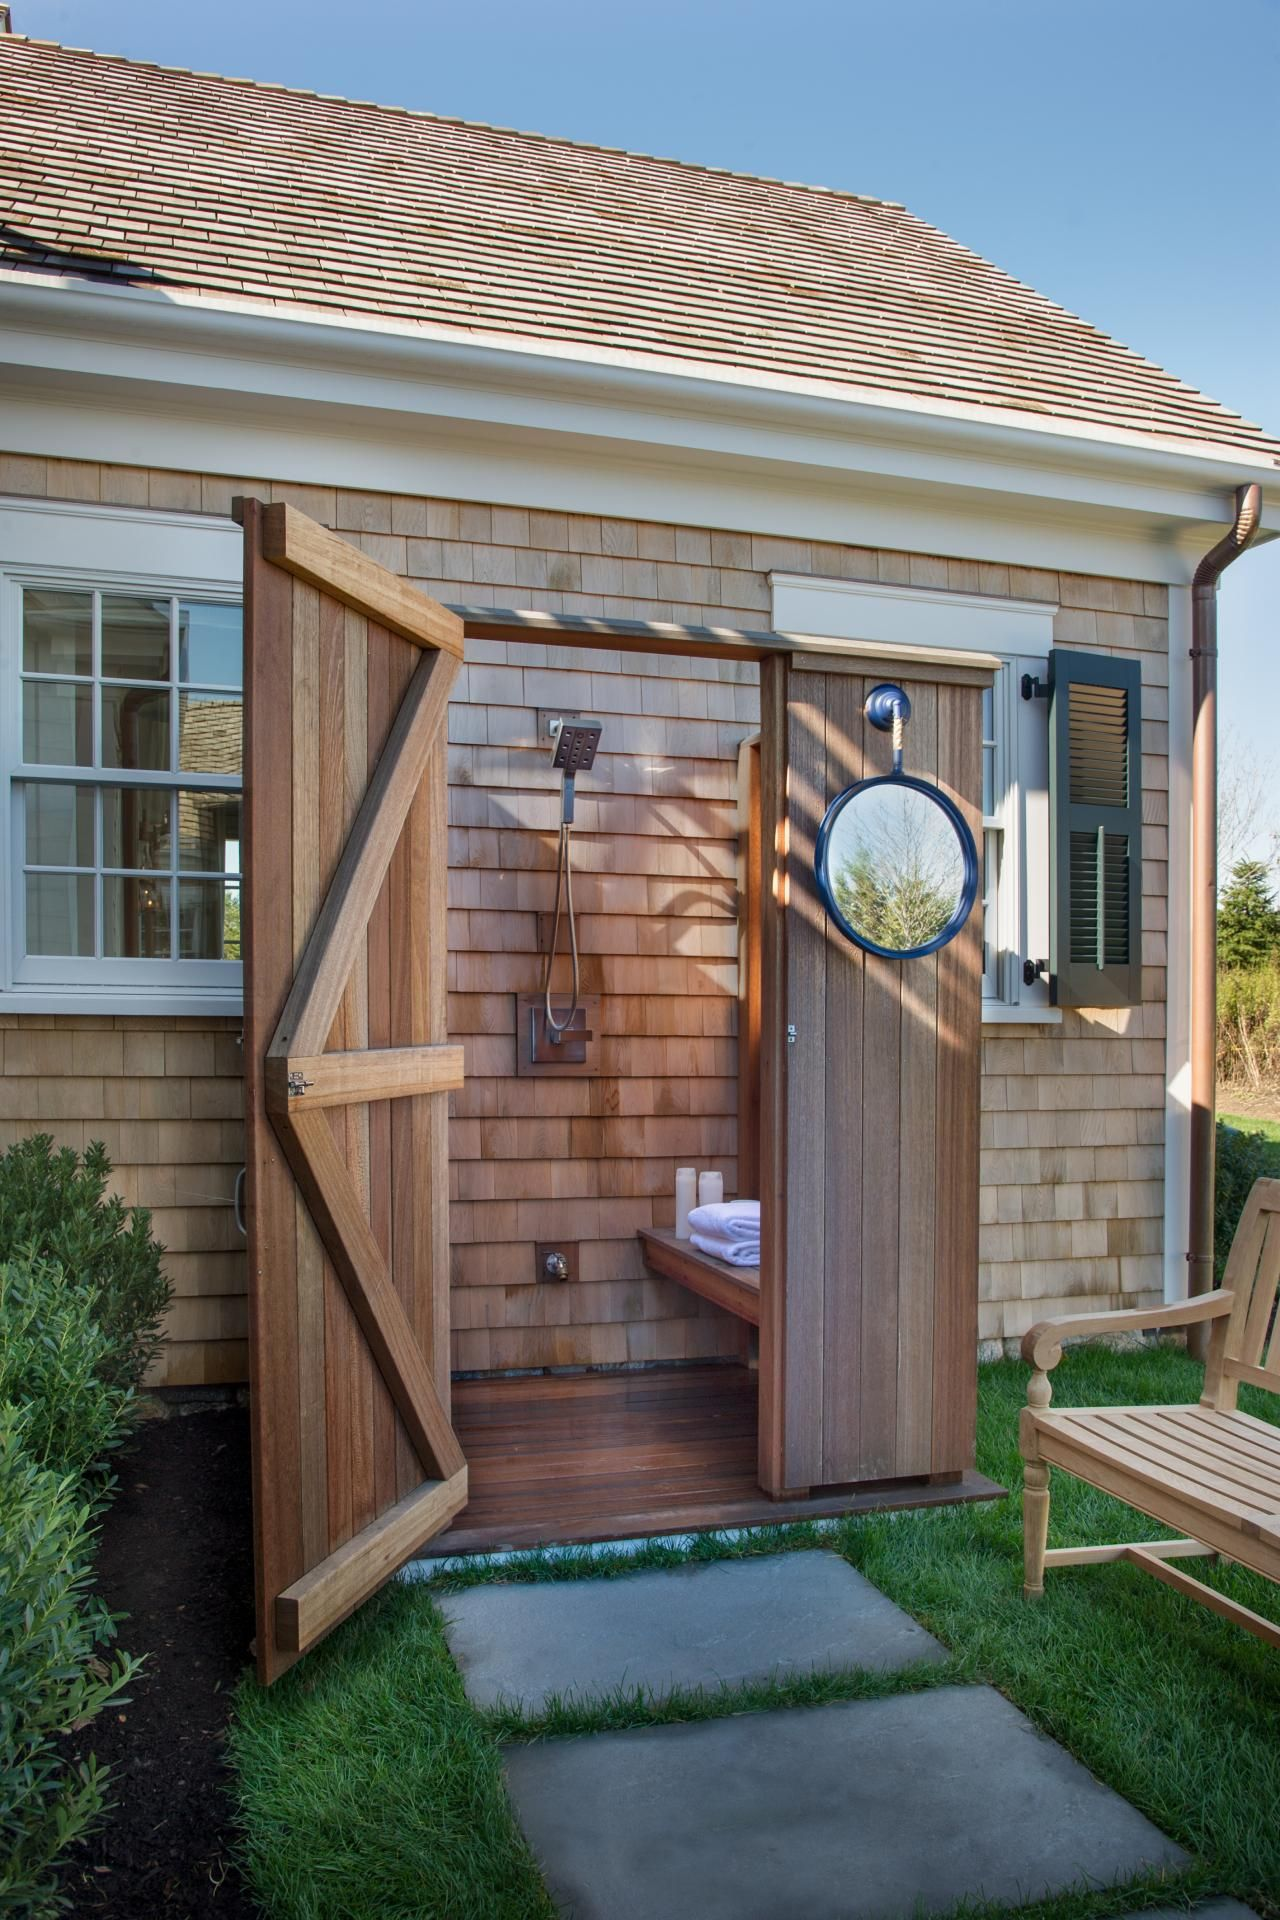 Backyard Shower 10 Simple Decorating Ideas From The Hgtv Dream Home Cape Cod